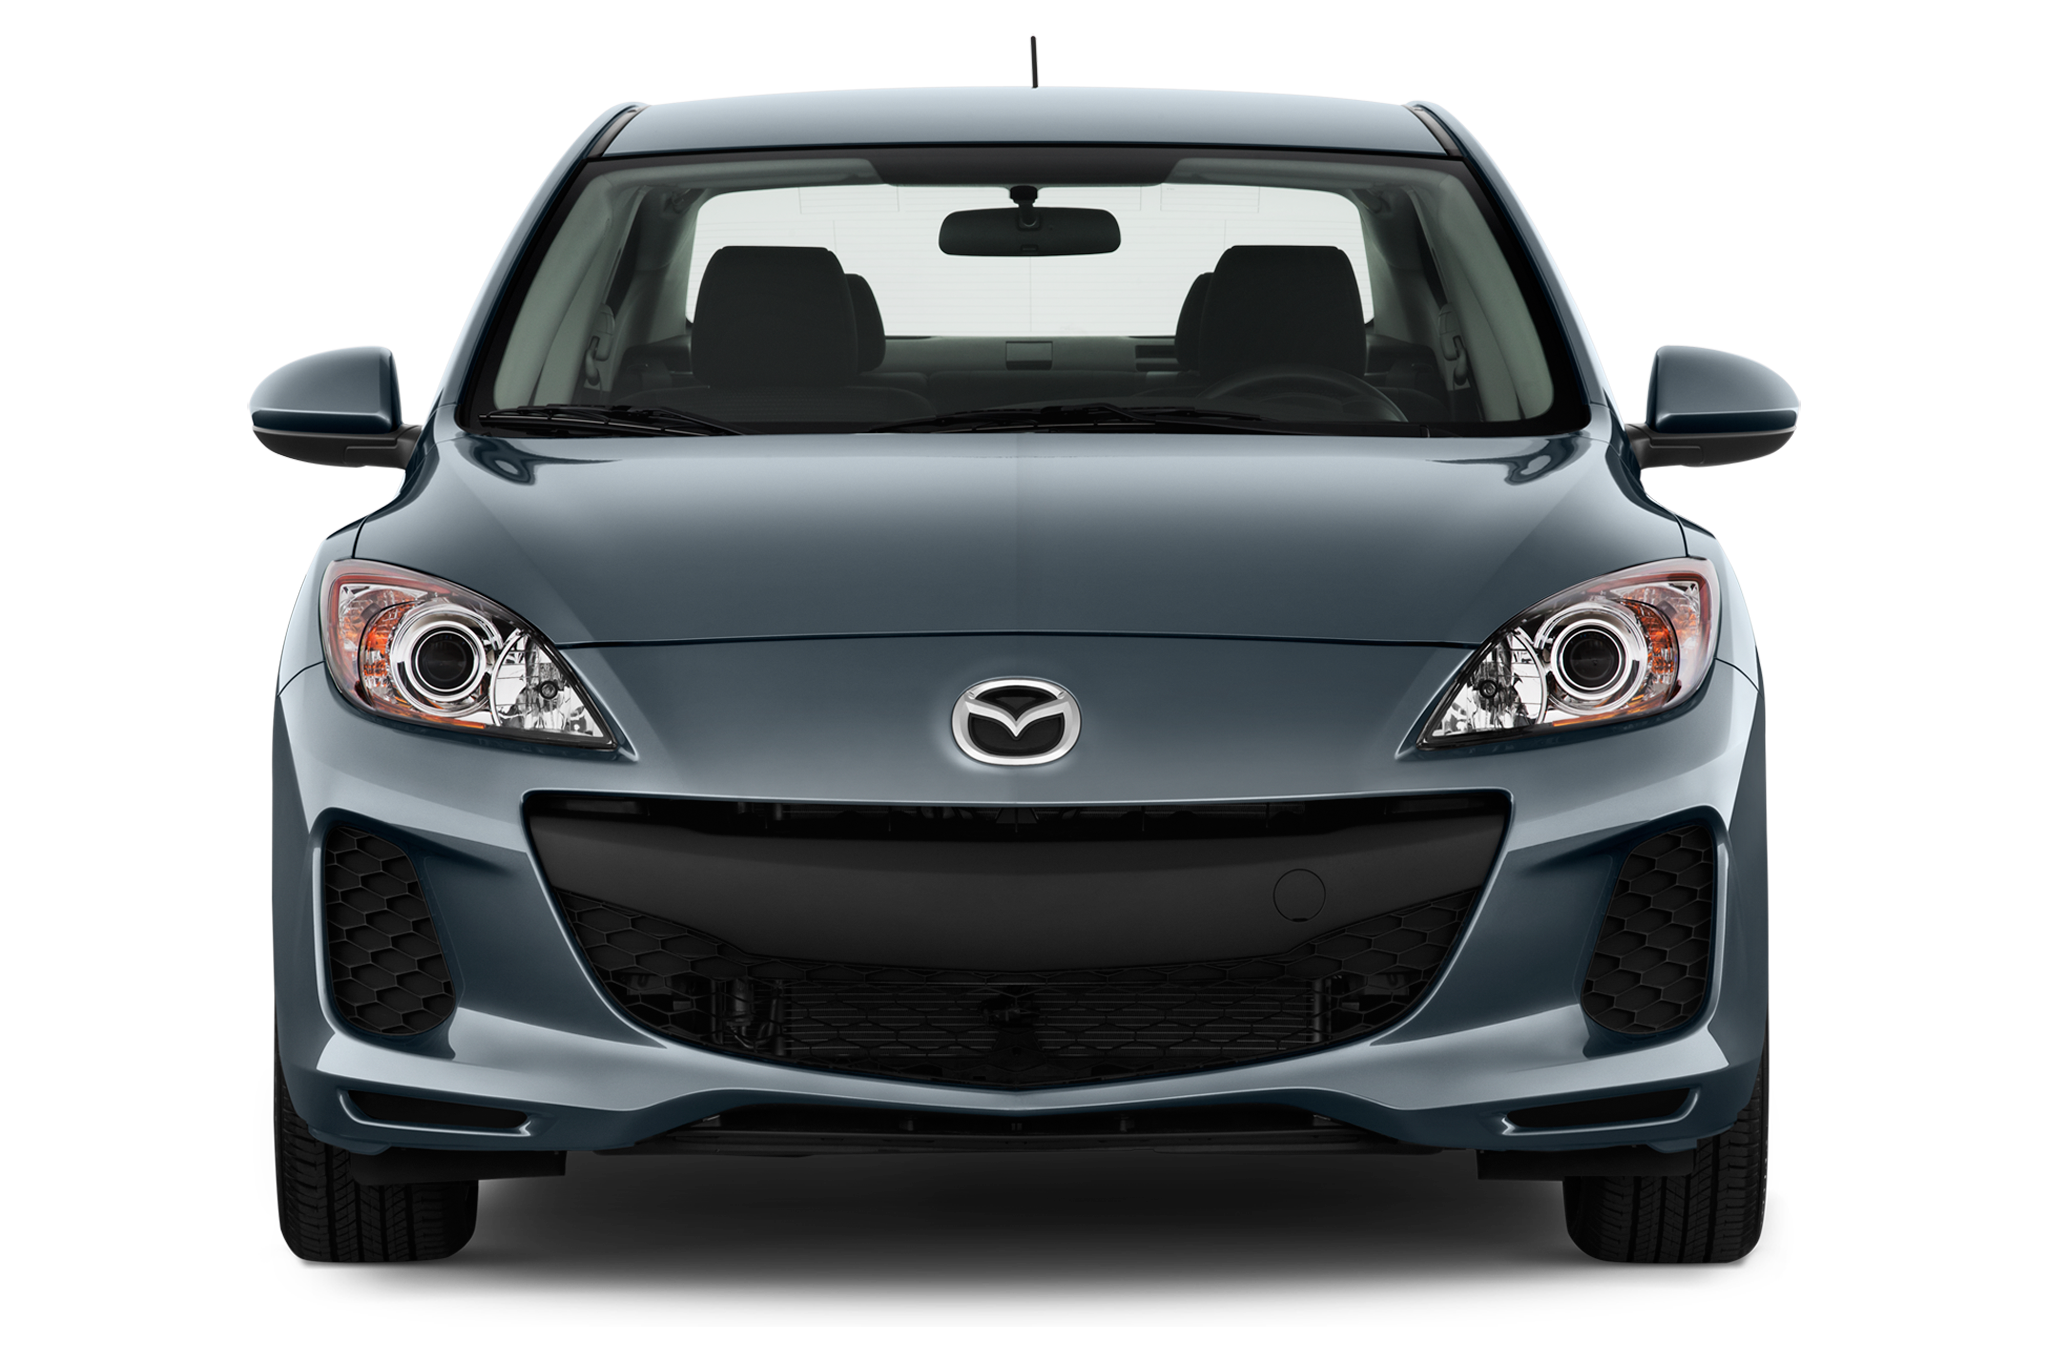 updated 2012 mazda 3 priced from 15 995. Black Bedroom Furniture Sets. Home Design Ideas